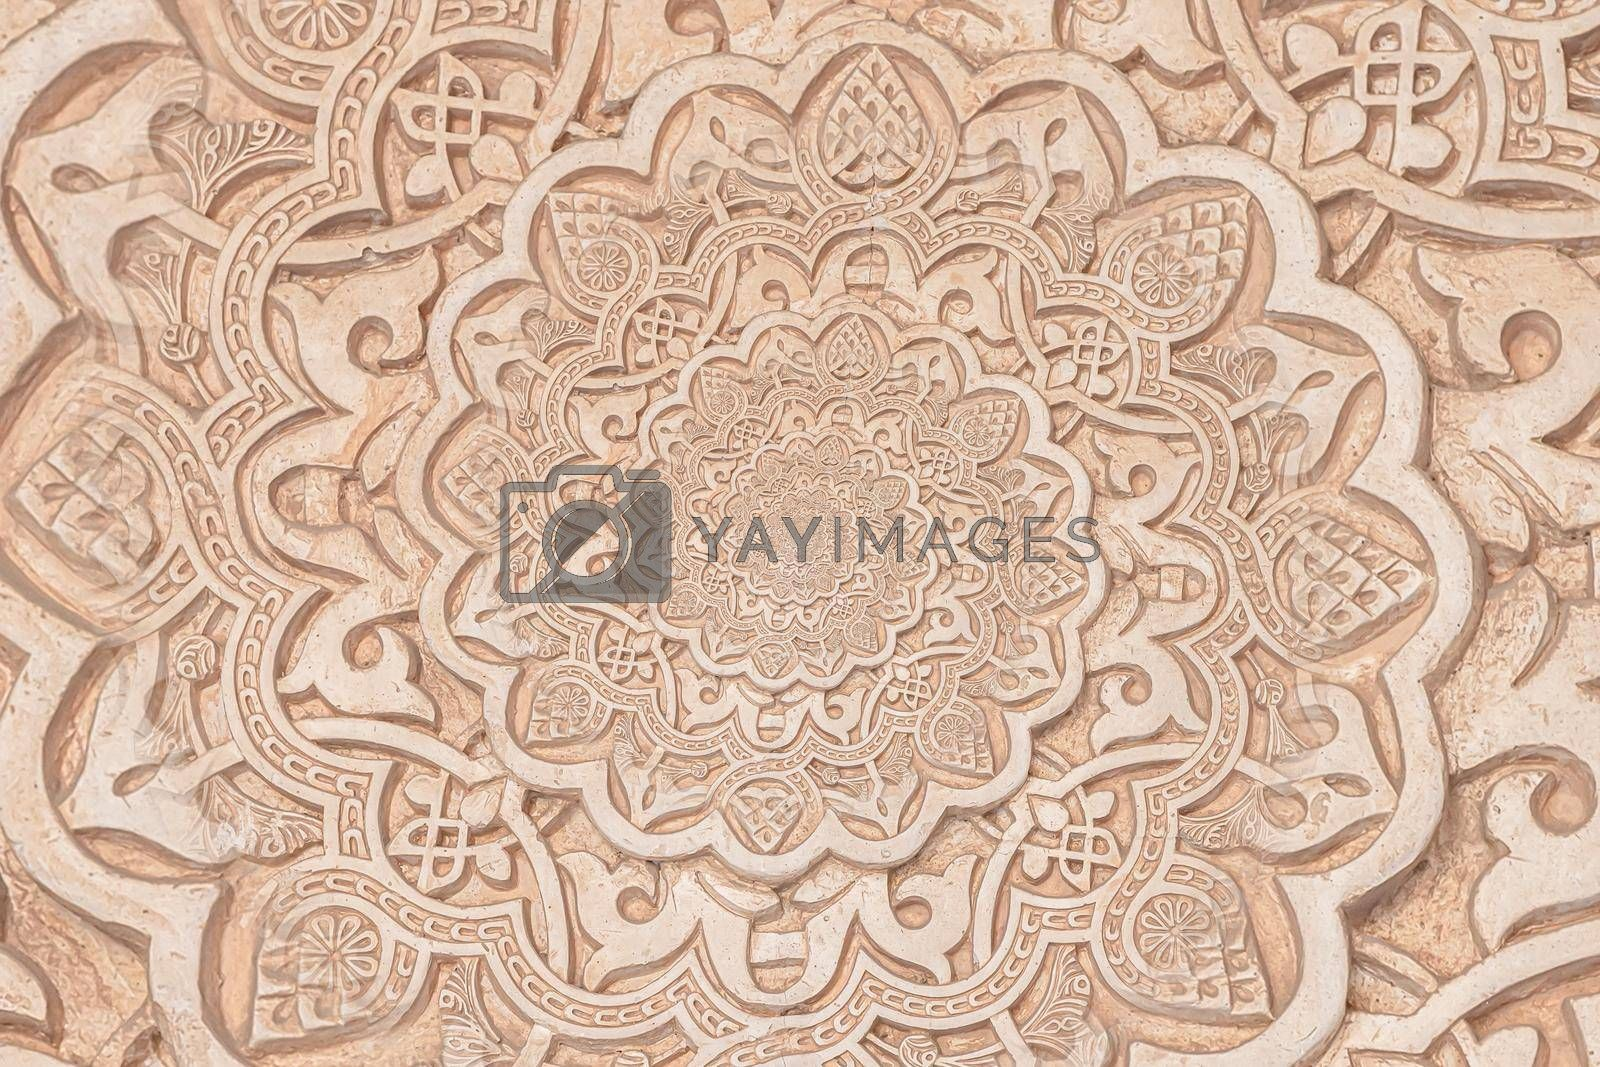 Arab background remanding to Islam culture. Design created from a 13th century architectural detail using droste effect.